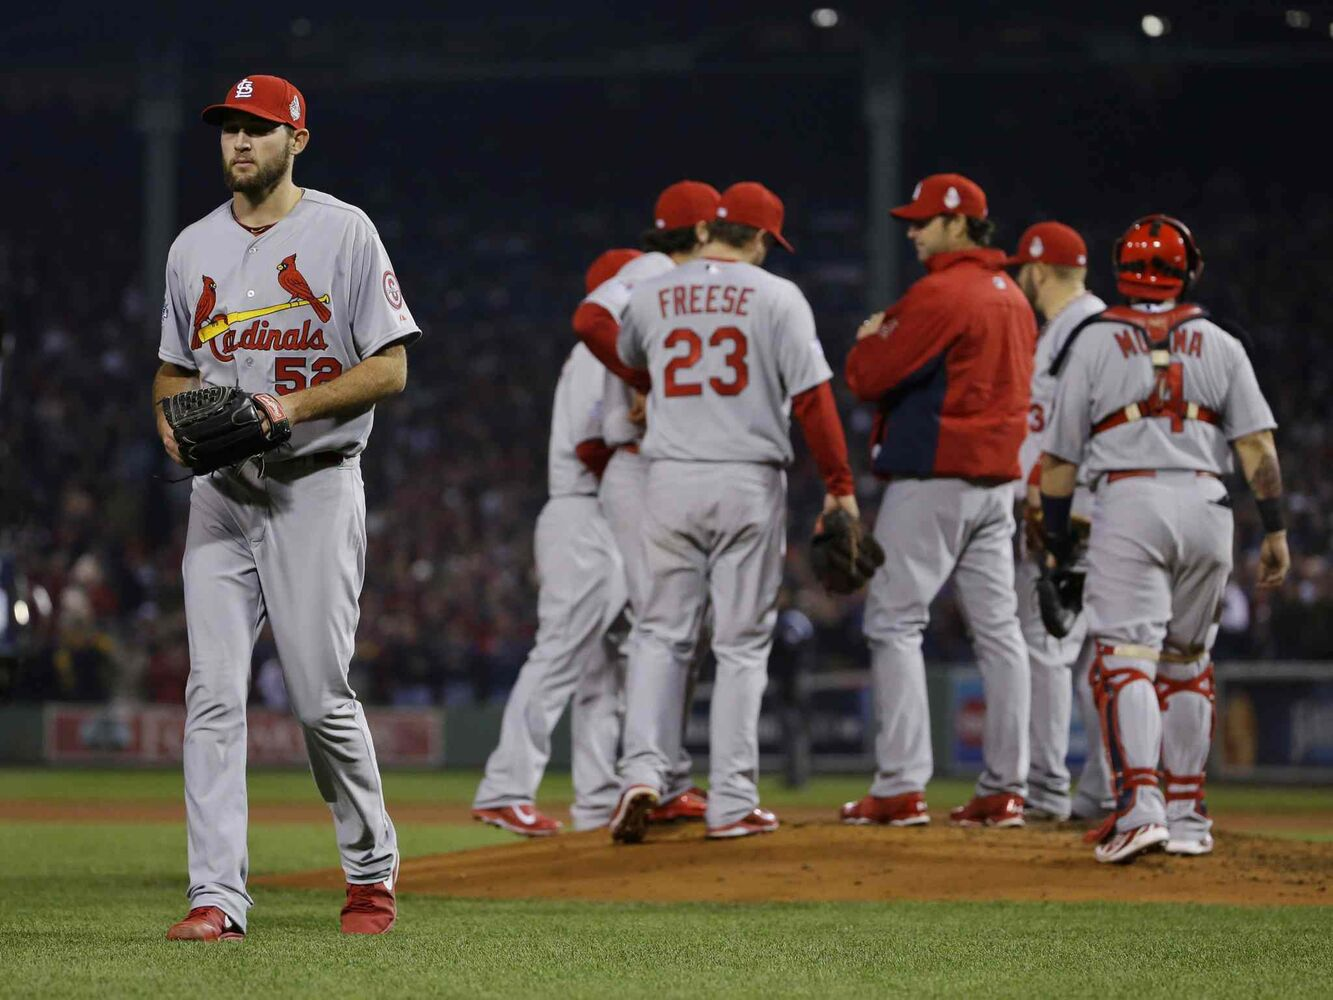 St. Louis Cardinals starting pitcher Michael Wacha walks off the field after being taken out of the game during the fourth inning.